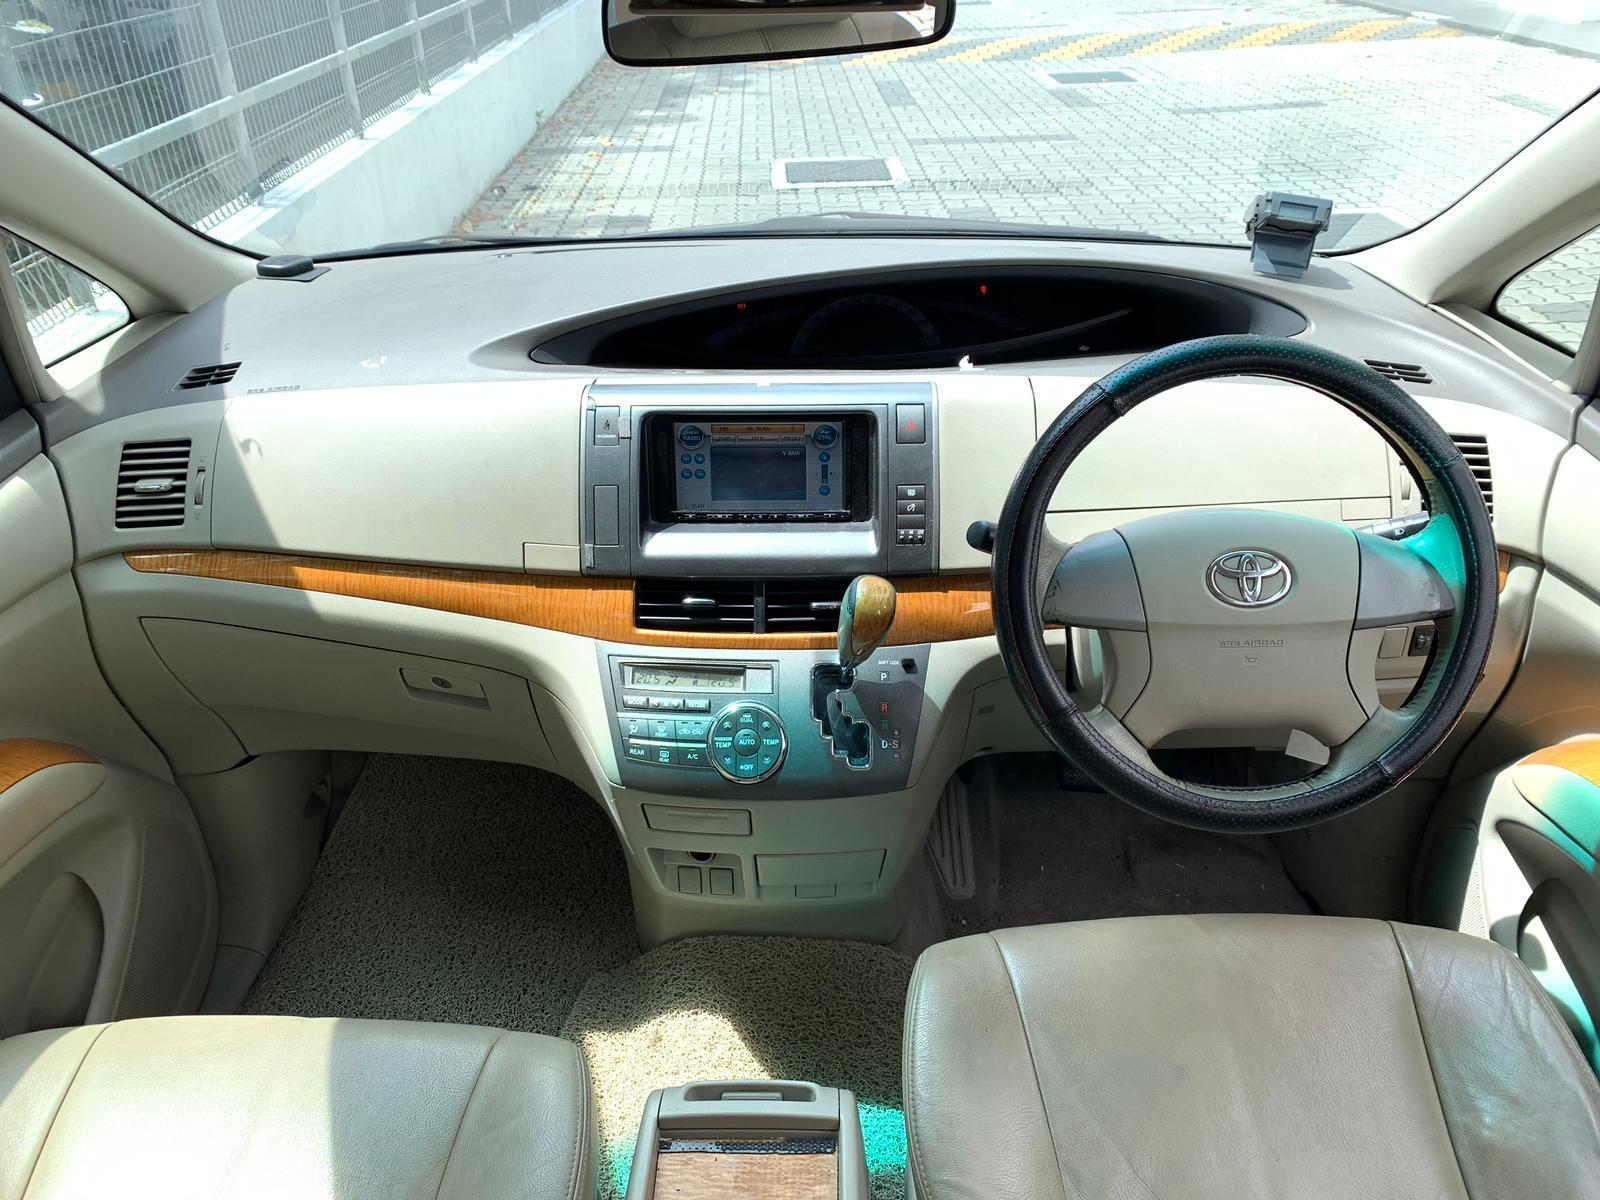 Toyota Previa Cheapest Rental for PHV Grab GoJek Ryde or Personal Use